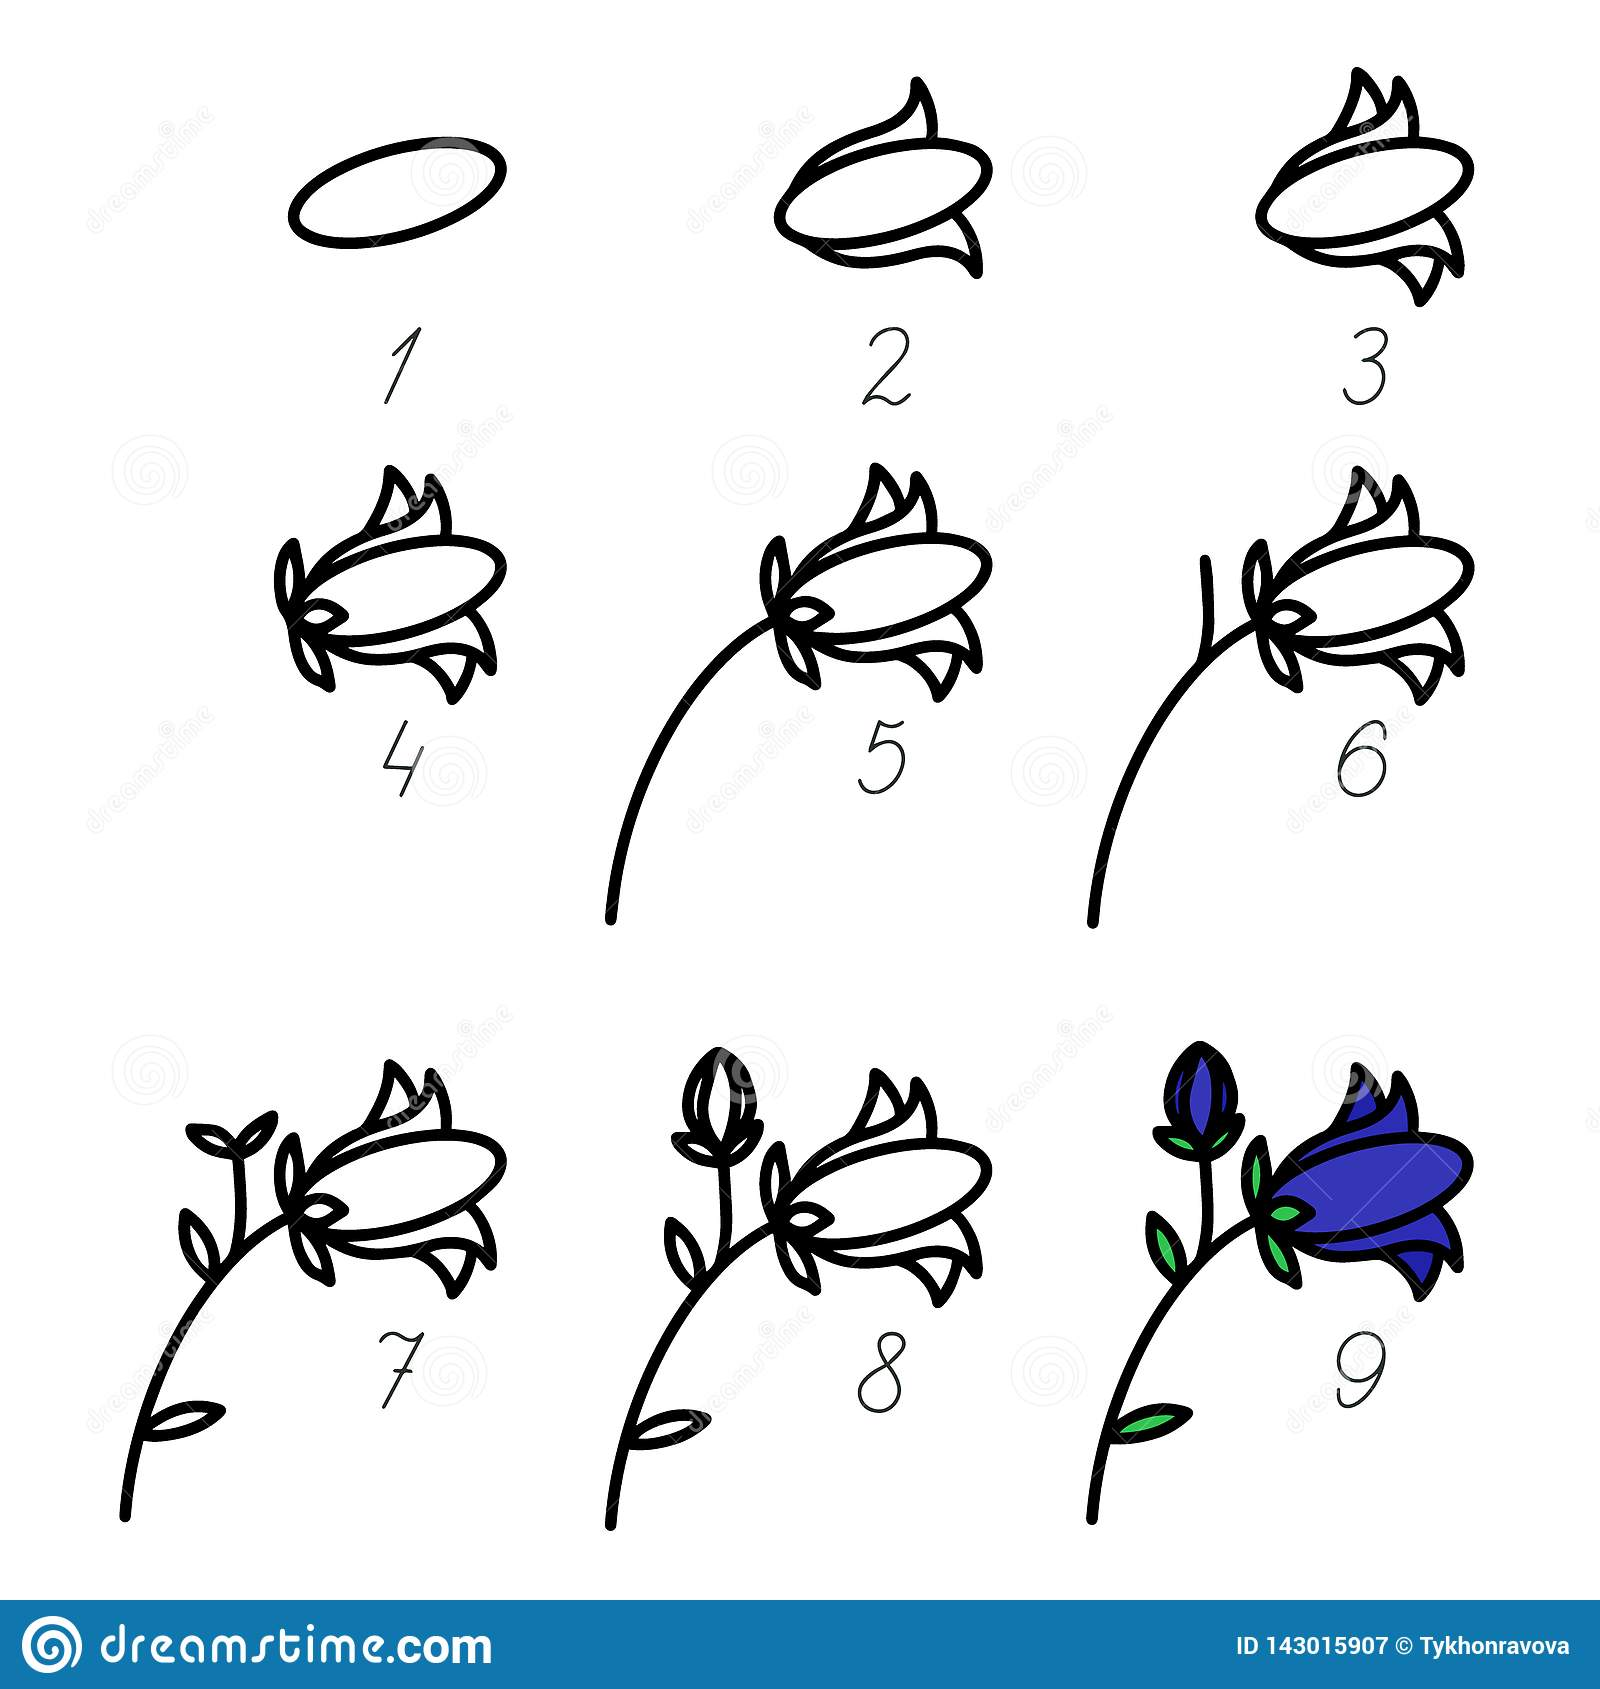 Step By Step Process Drawn Flower How To Drawn Art Vector For Beginner Brush Illustration Children Drawing Game Kid Playing Stock Vector Illustration Of Draw Children 143015907